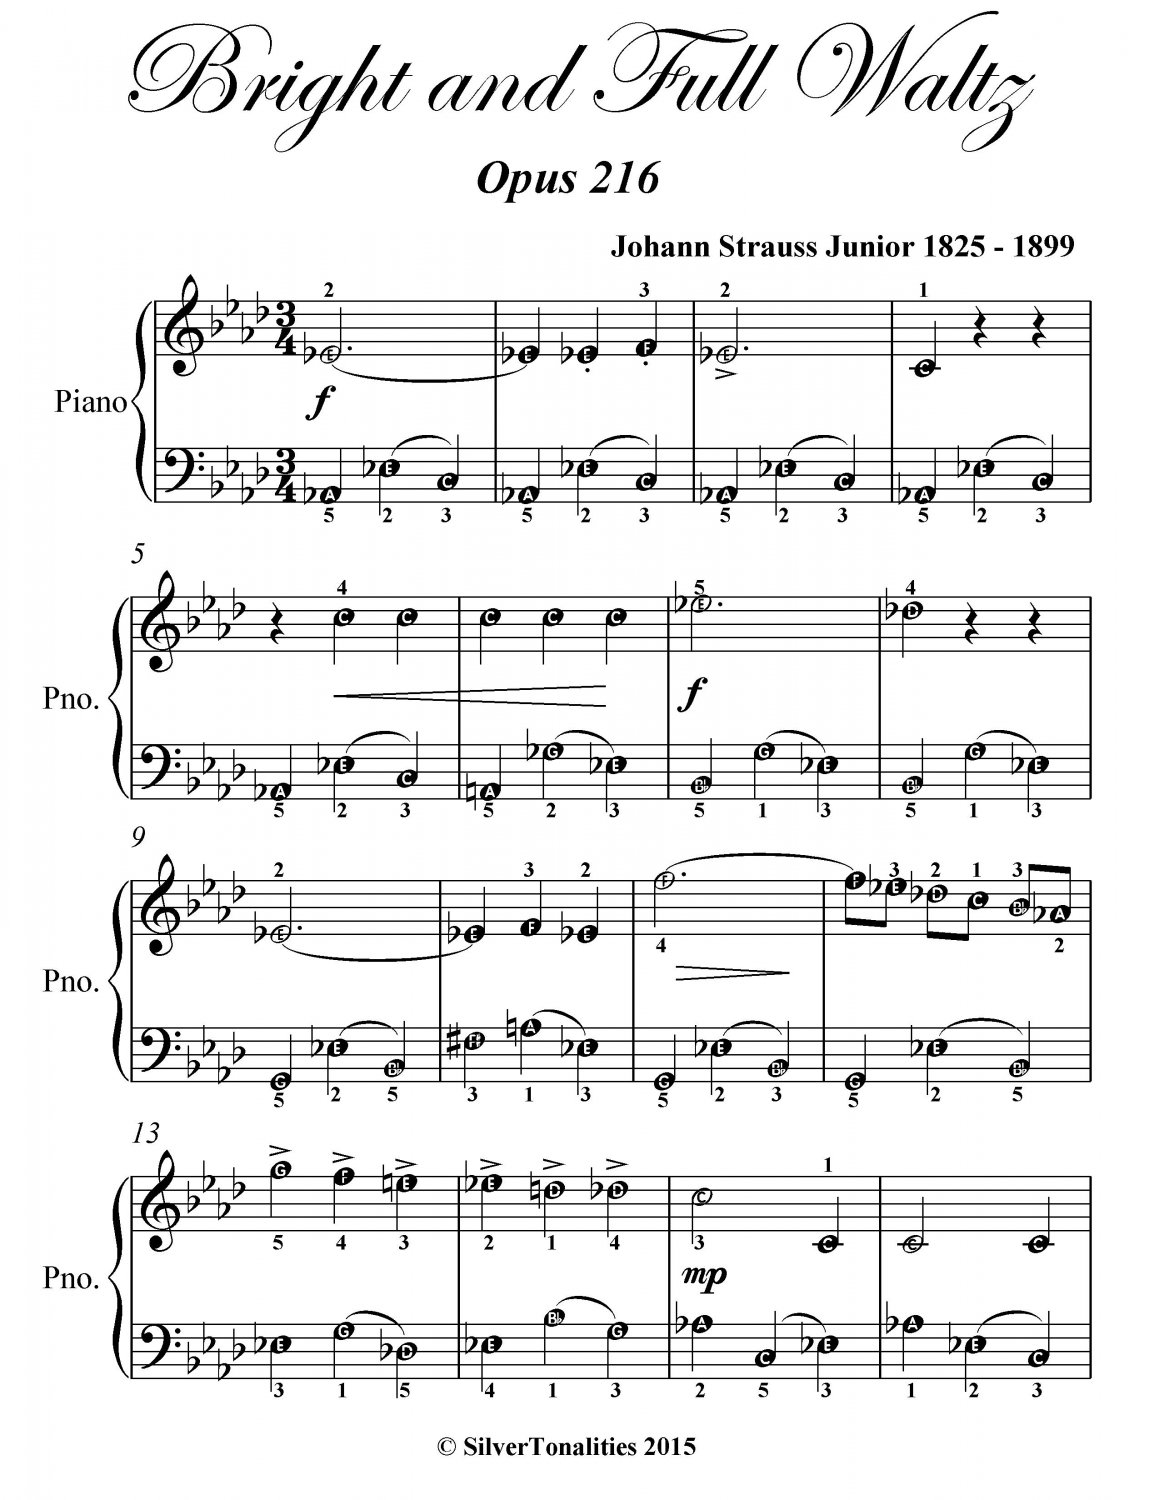 Bright and Full Waltz Opus 216 Easy Piano Sheet Music PDF